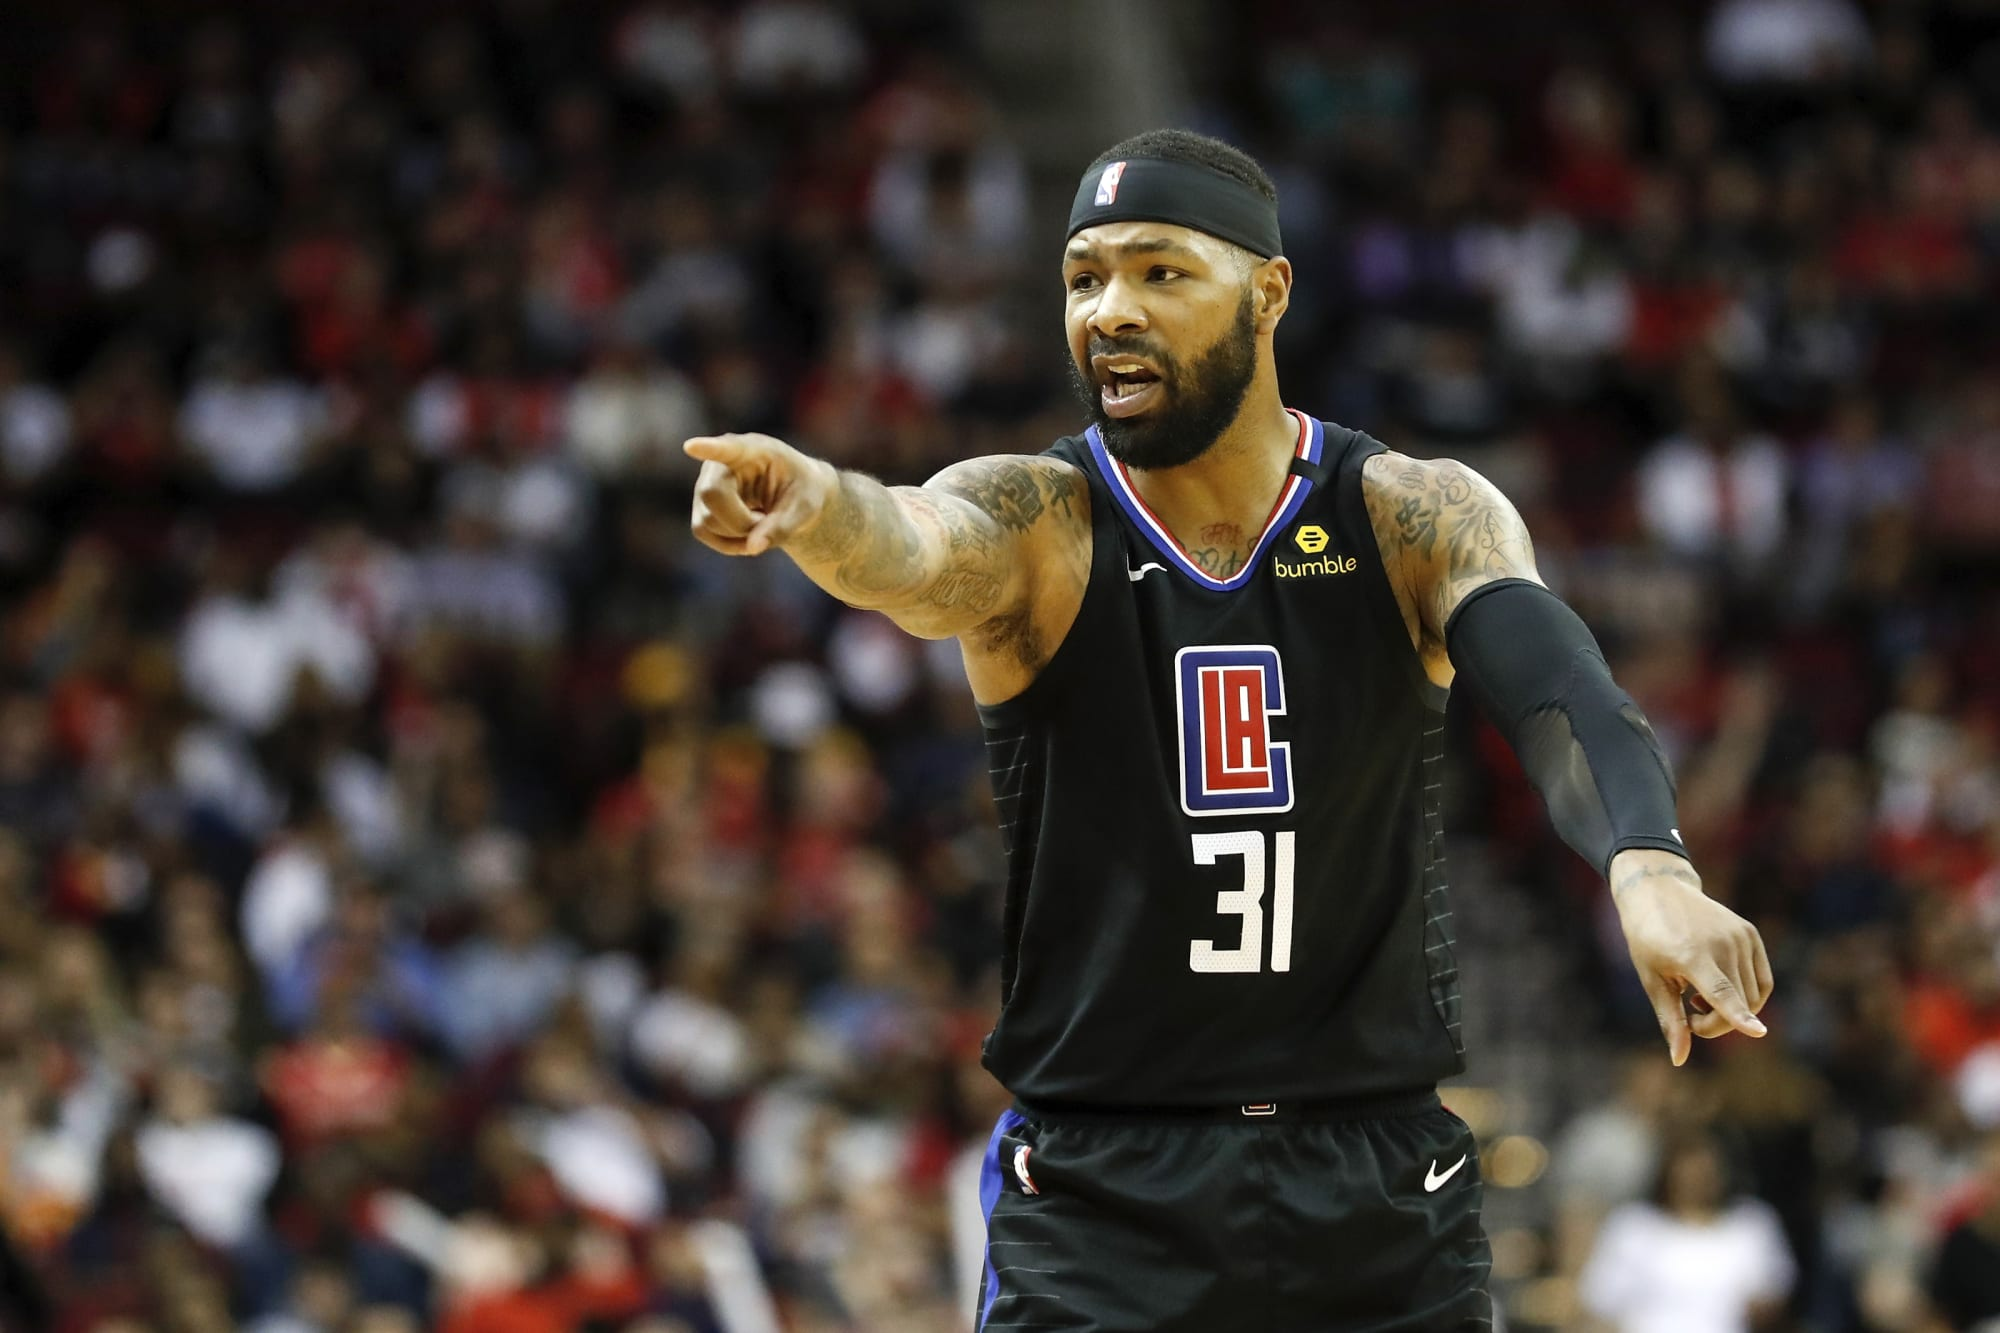 Clippers hilariously overpay Marcus Morris after losing Montrezl Harrell